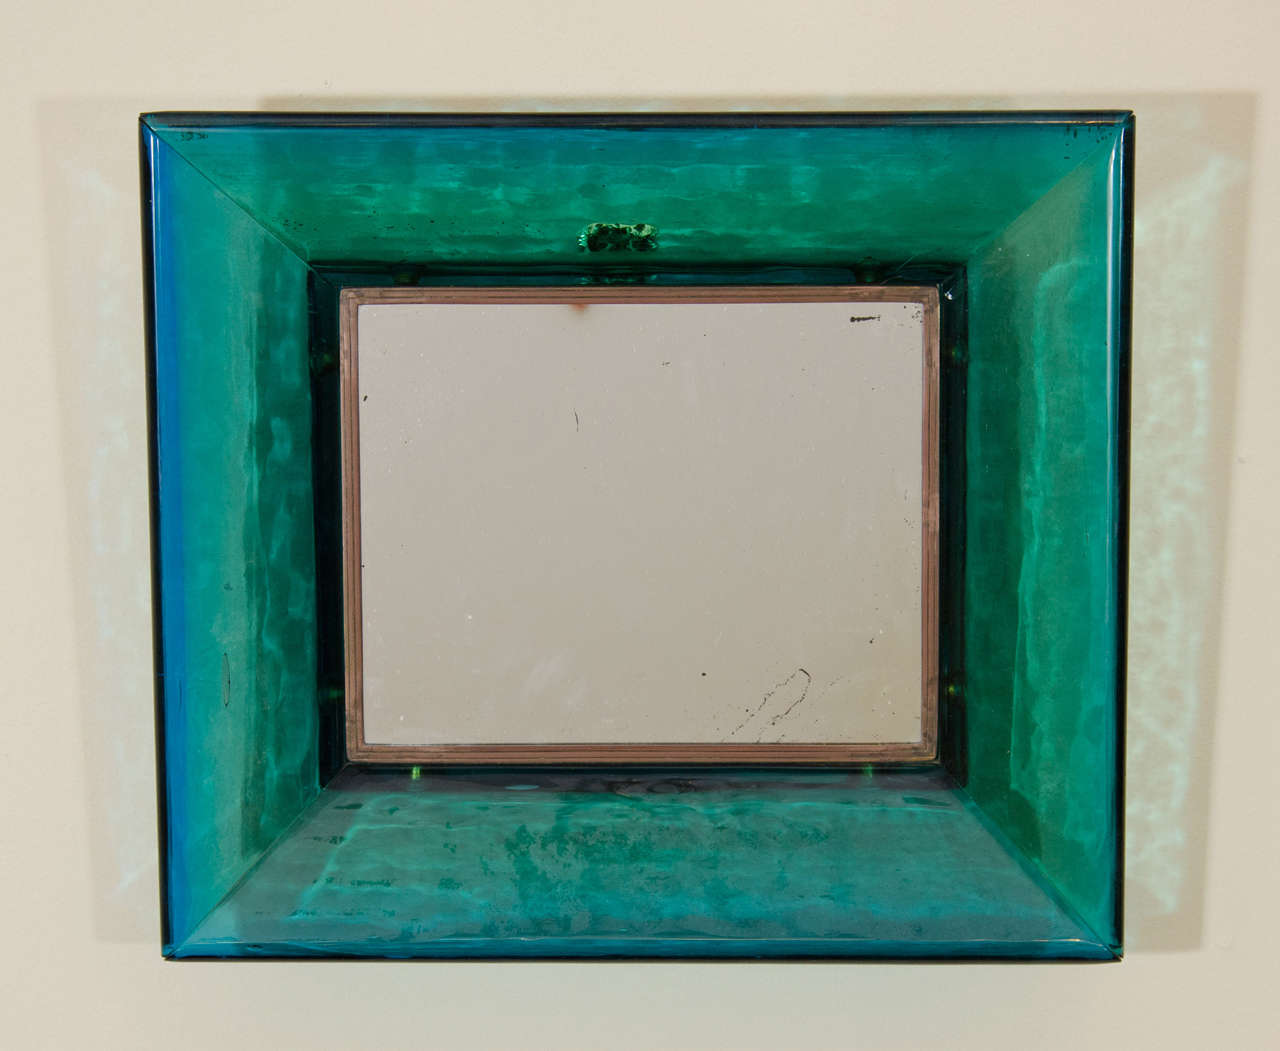 A midcentury carlo scarpa for venini glass frame wall mirror for a midcentury carlo scarpa for venini glass frame wall mirror 2 amipublicfo Choice Image